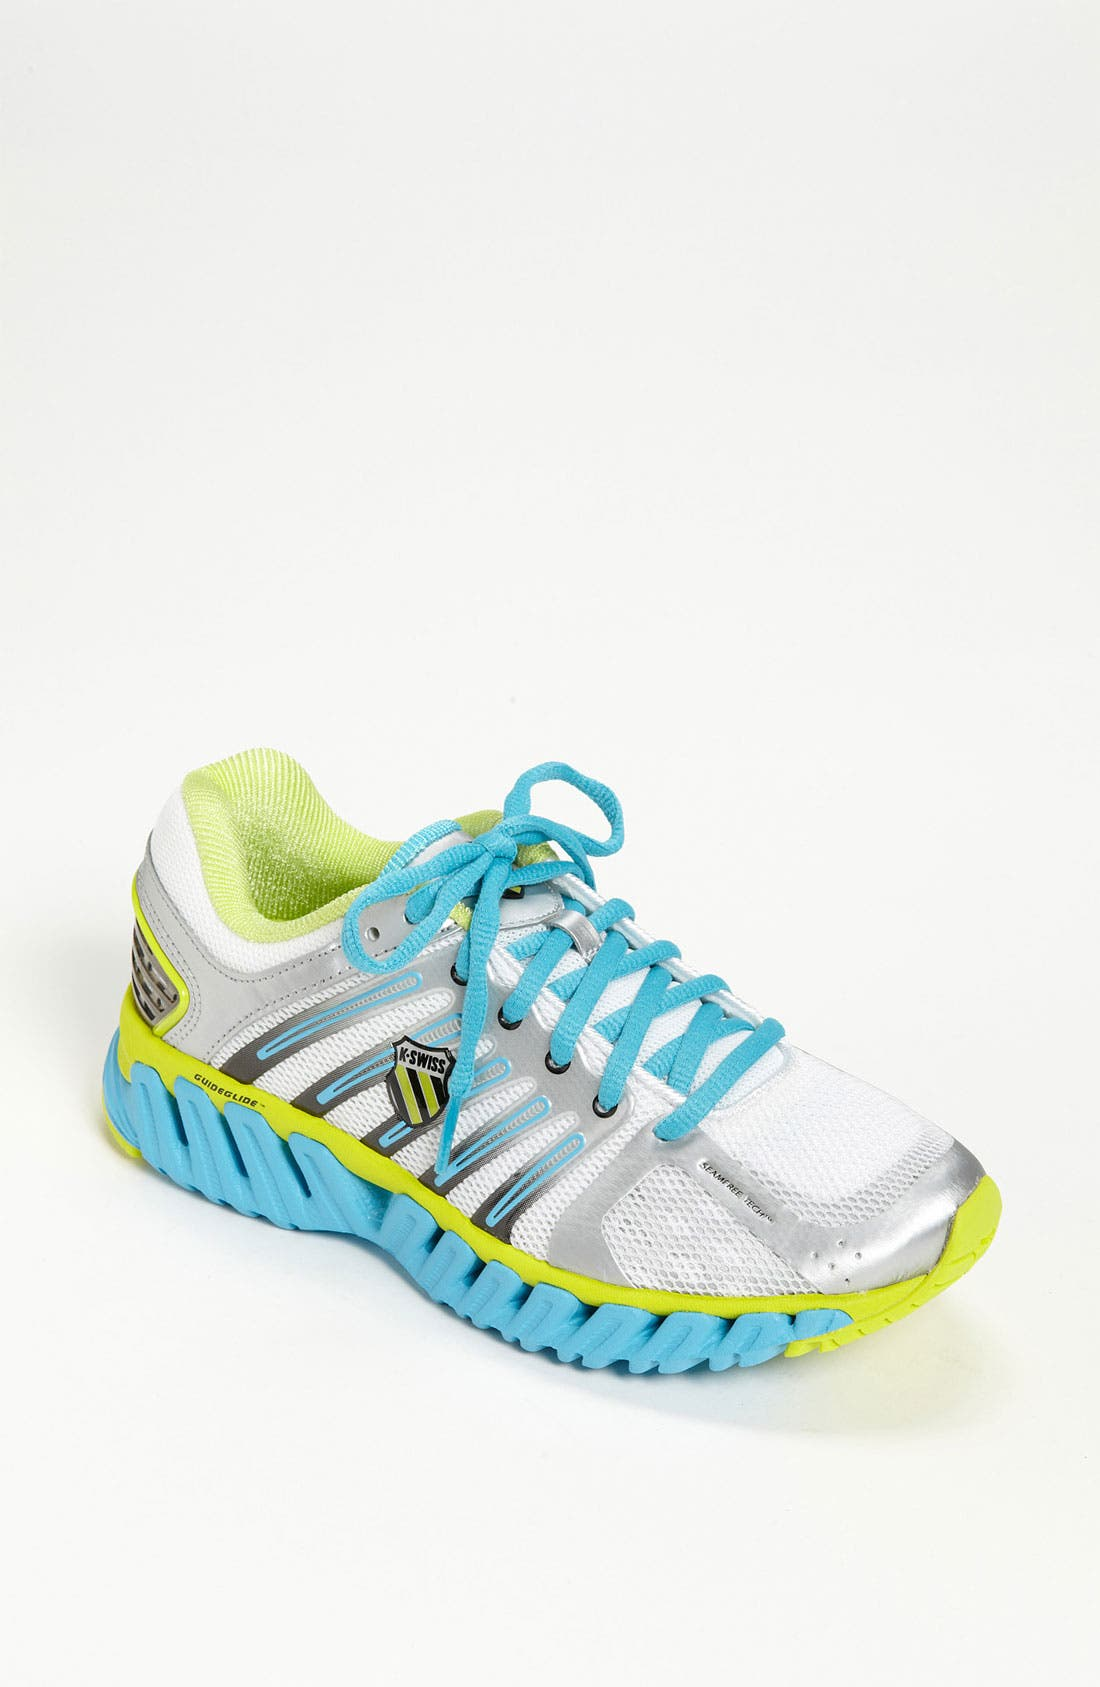 Alternate Image 1 Selected - K-Swiss 'Blade Max' Training Shoe (Women)